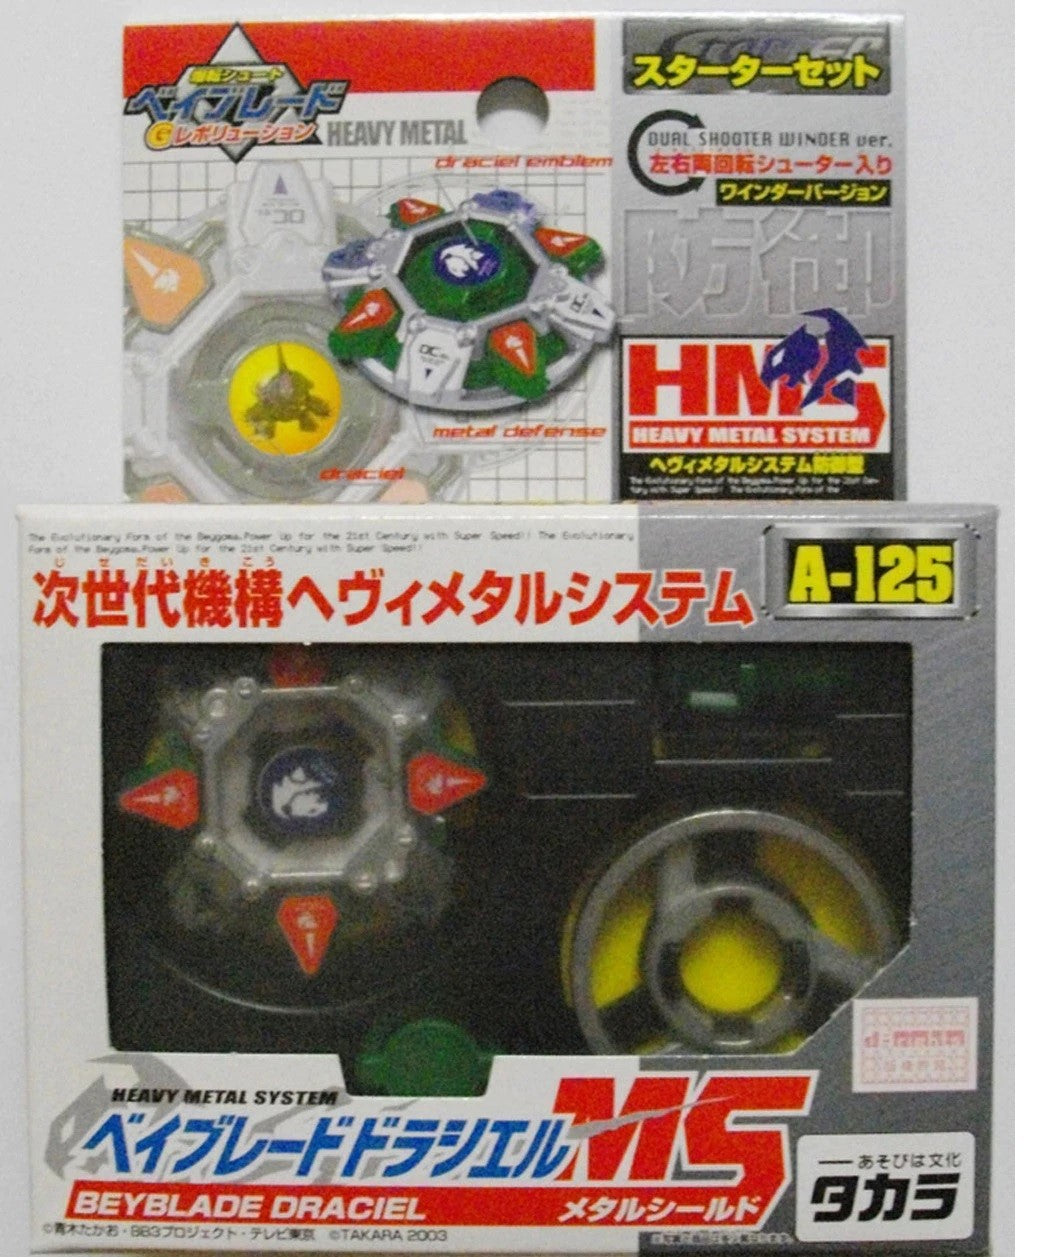 Takara Tomy Beyblade A-125 Starter Draciel MS (with Spare Rip Cord)